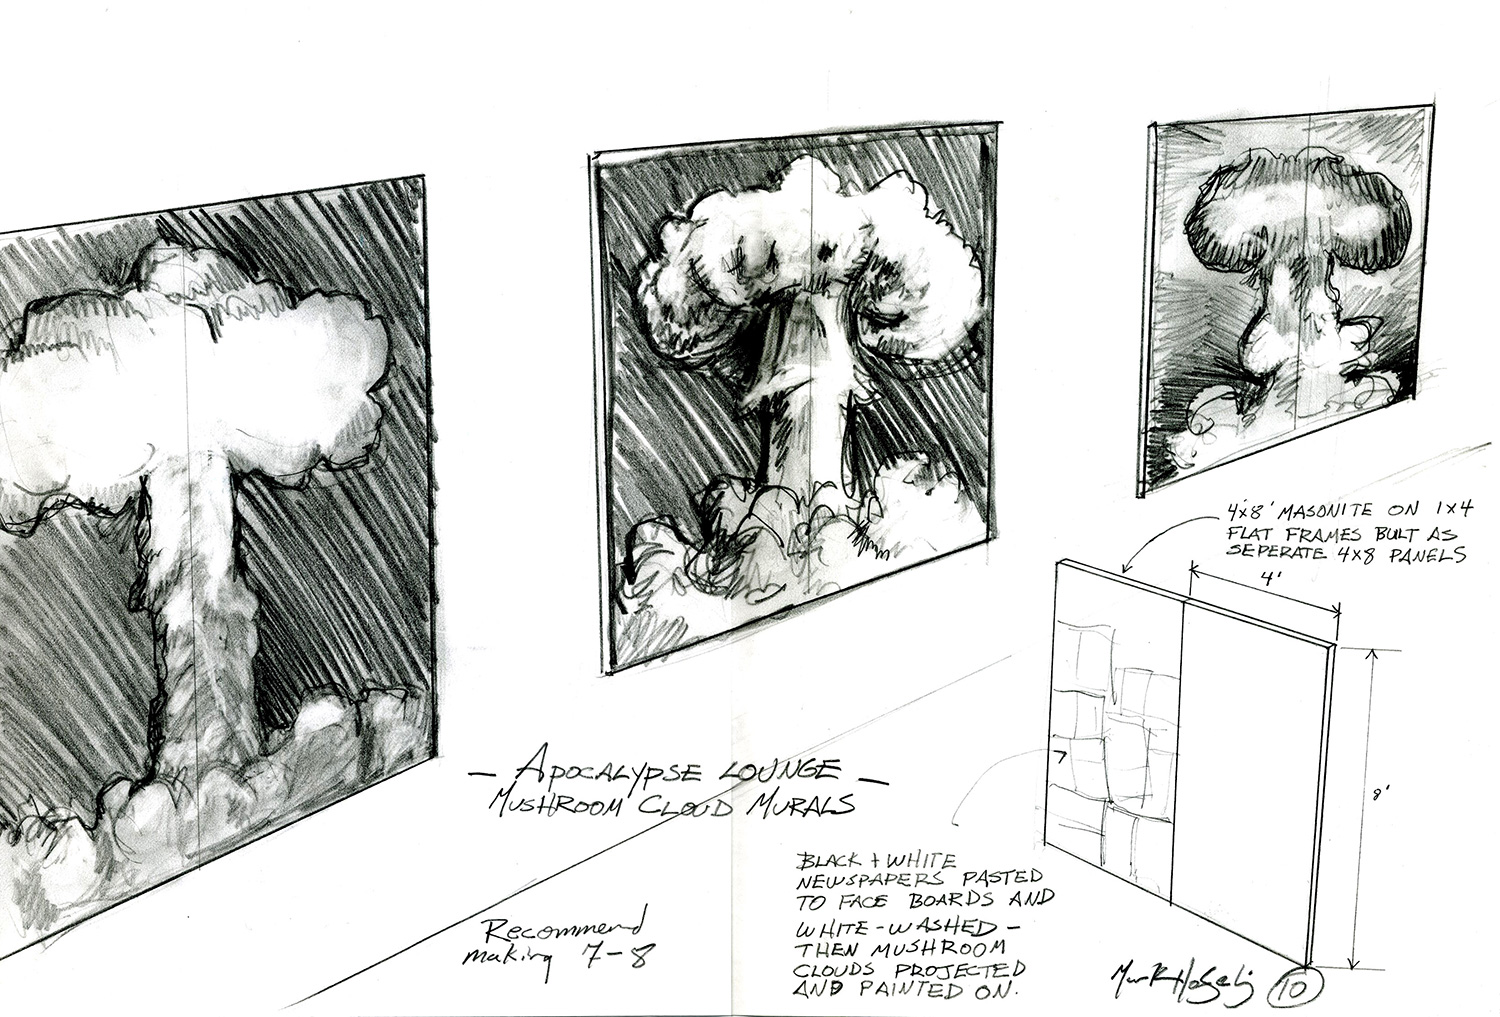 Conceptual sketch for a yet-to-be-realized, end of the world themed event.